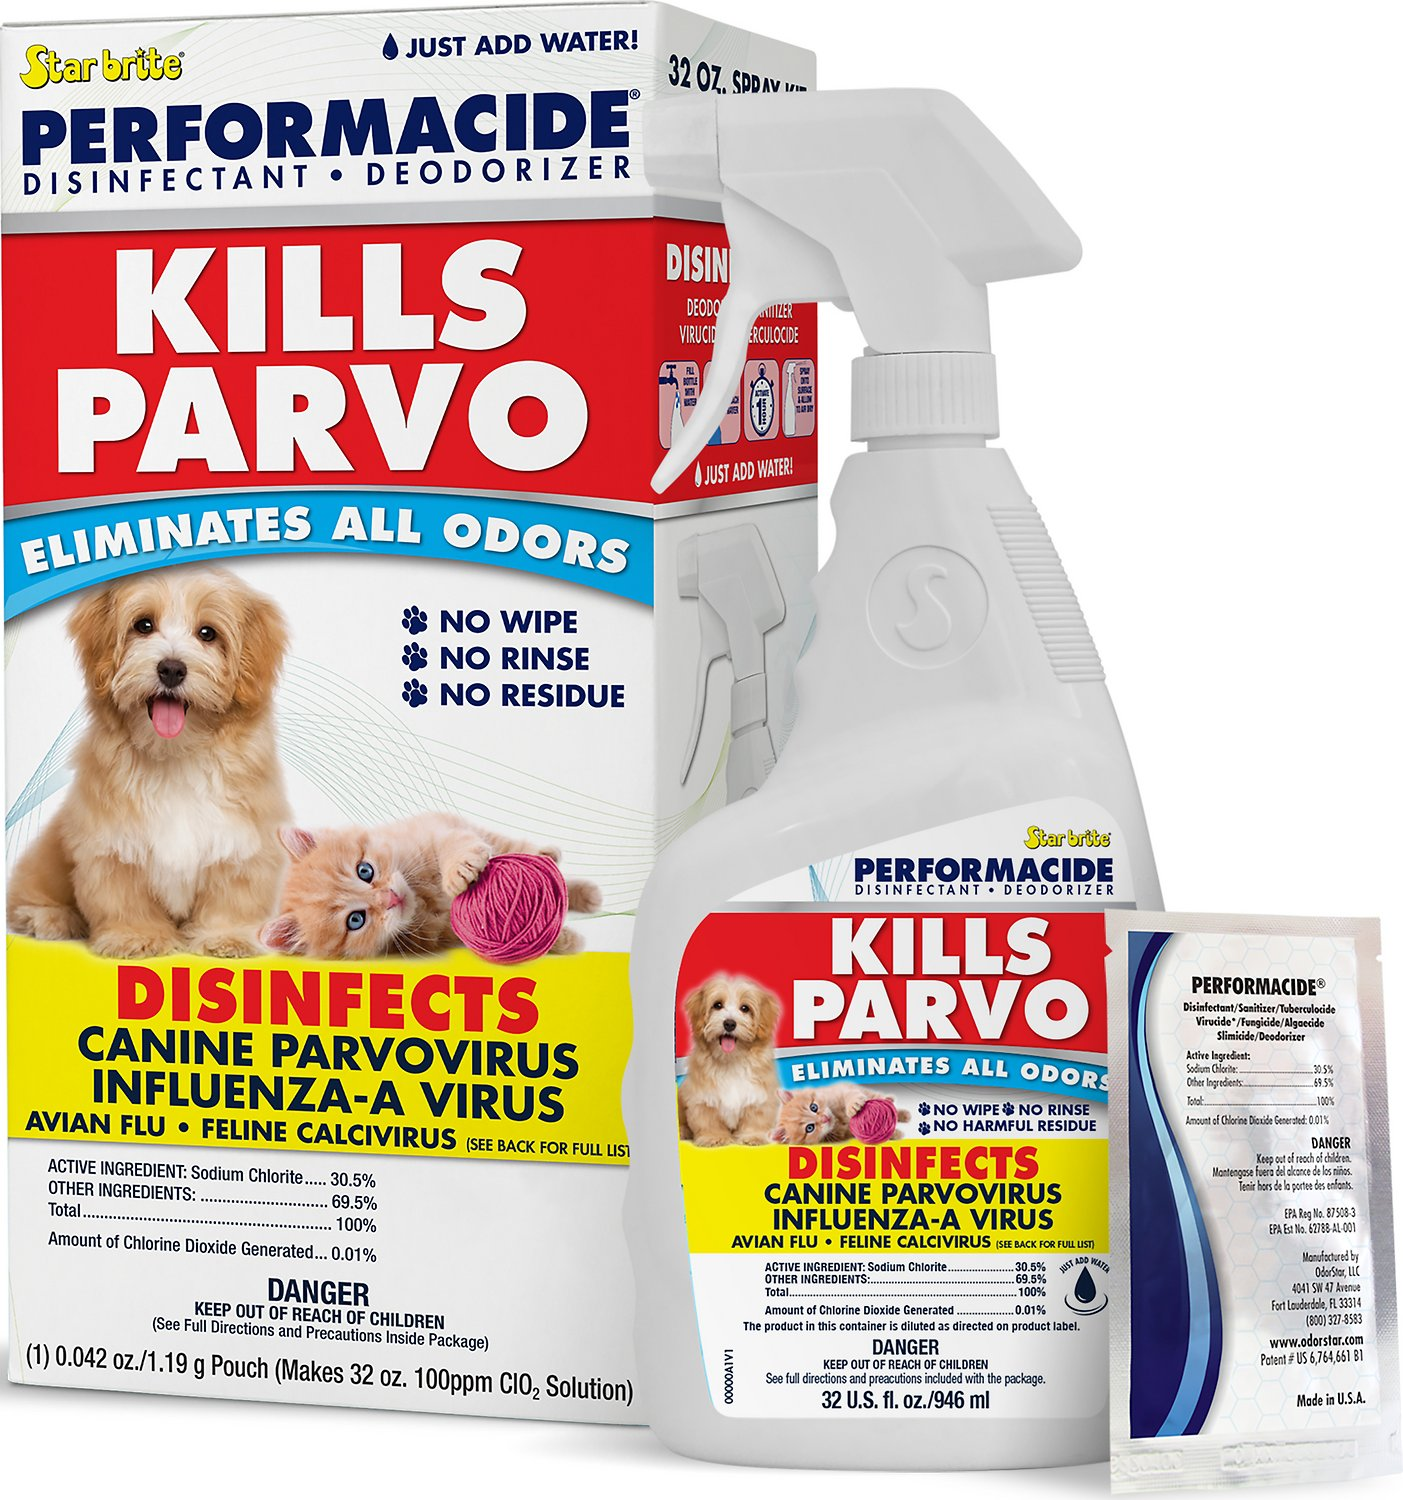 How To Disinfect Carpet From Parvo